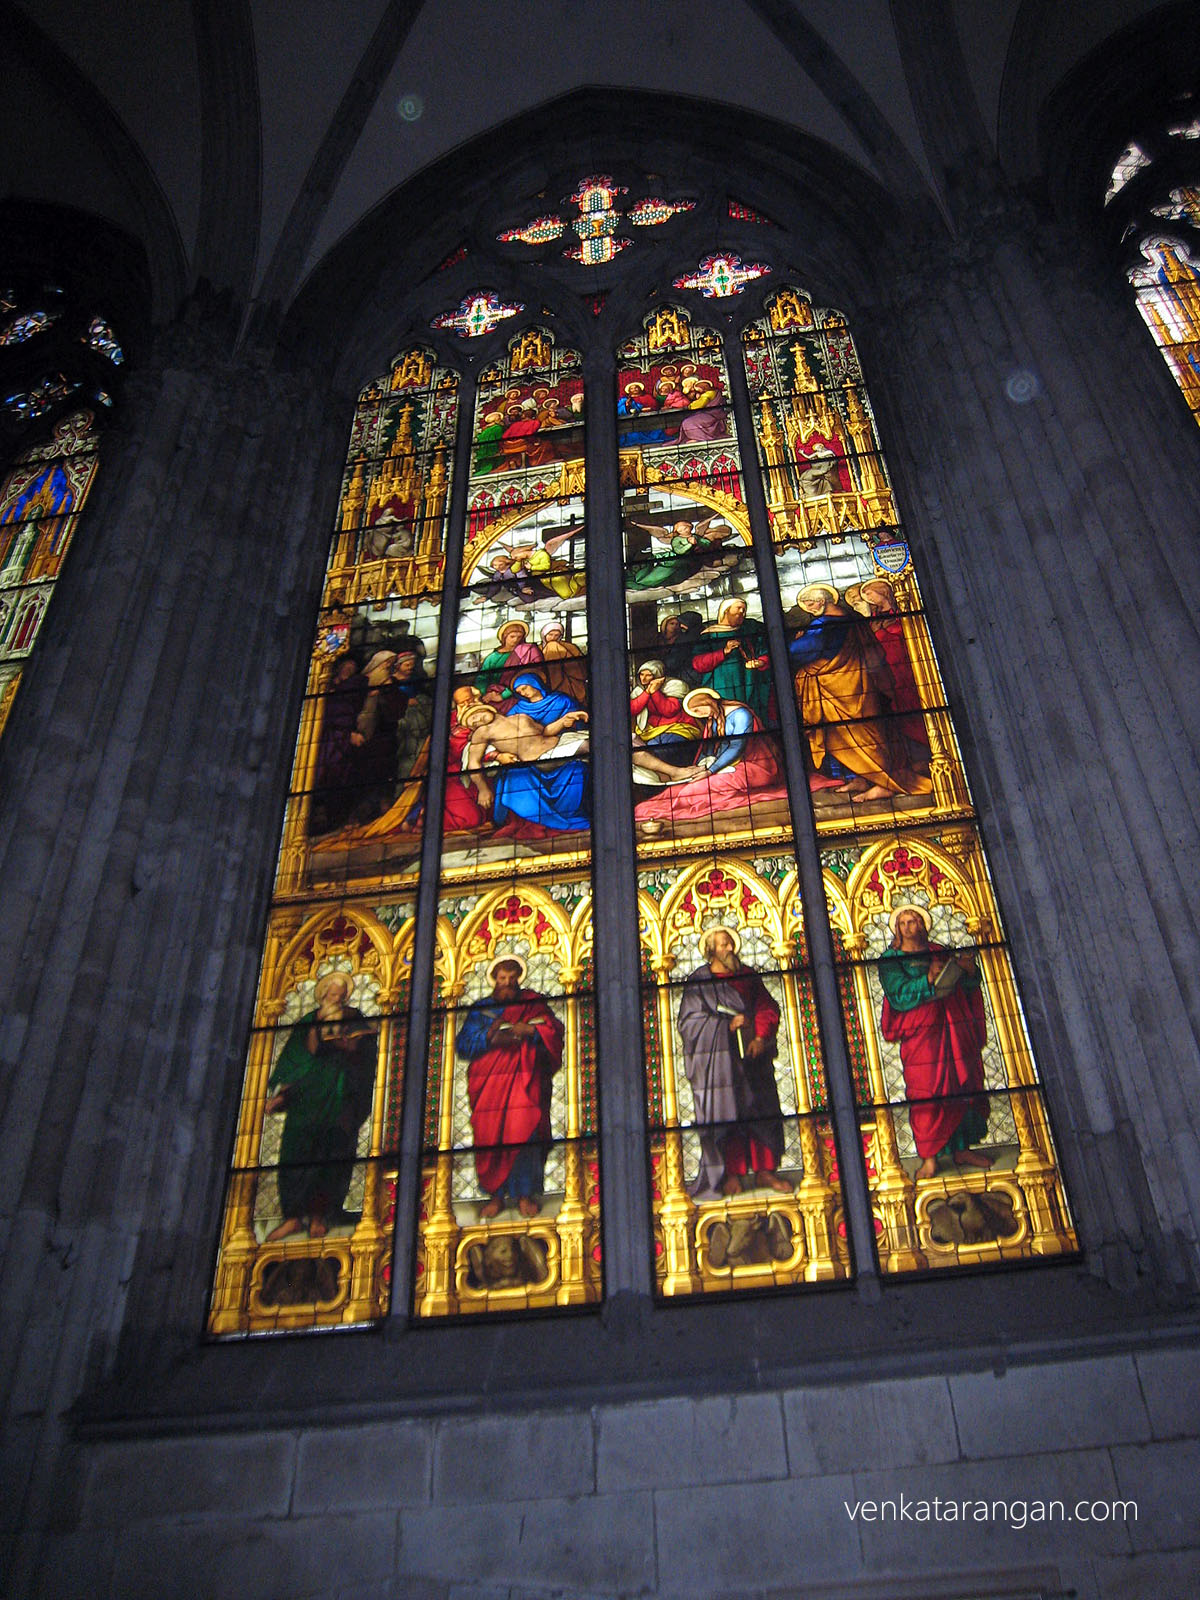 Stained glass mosaic at Kölner Dom (Cologne Cathedral)